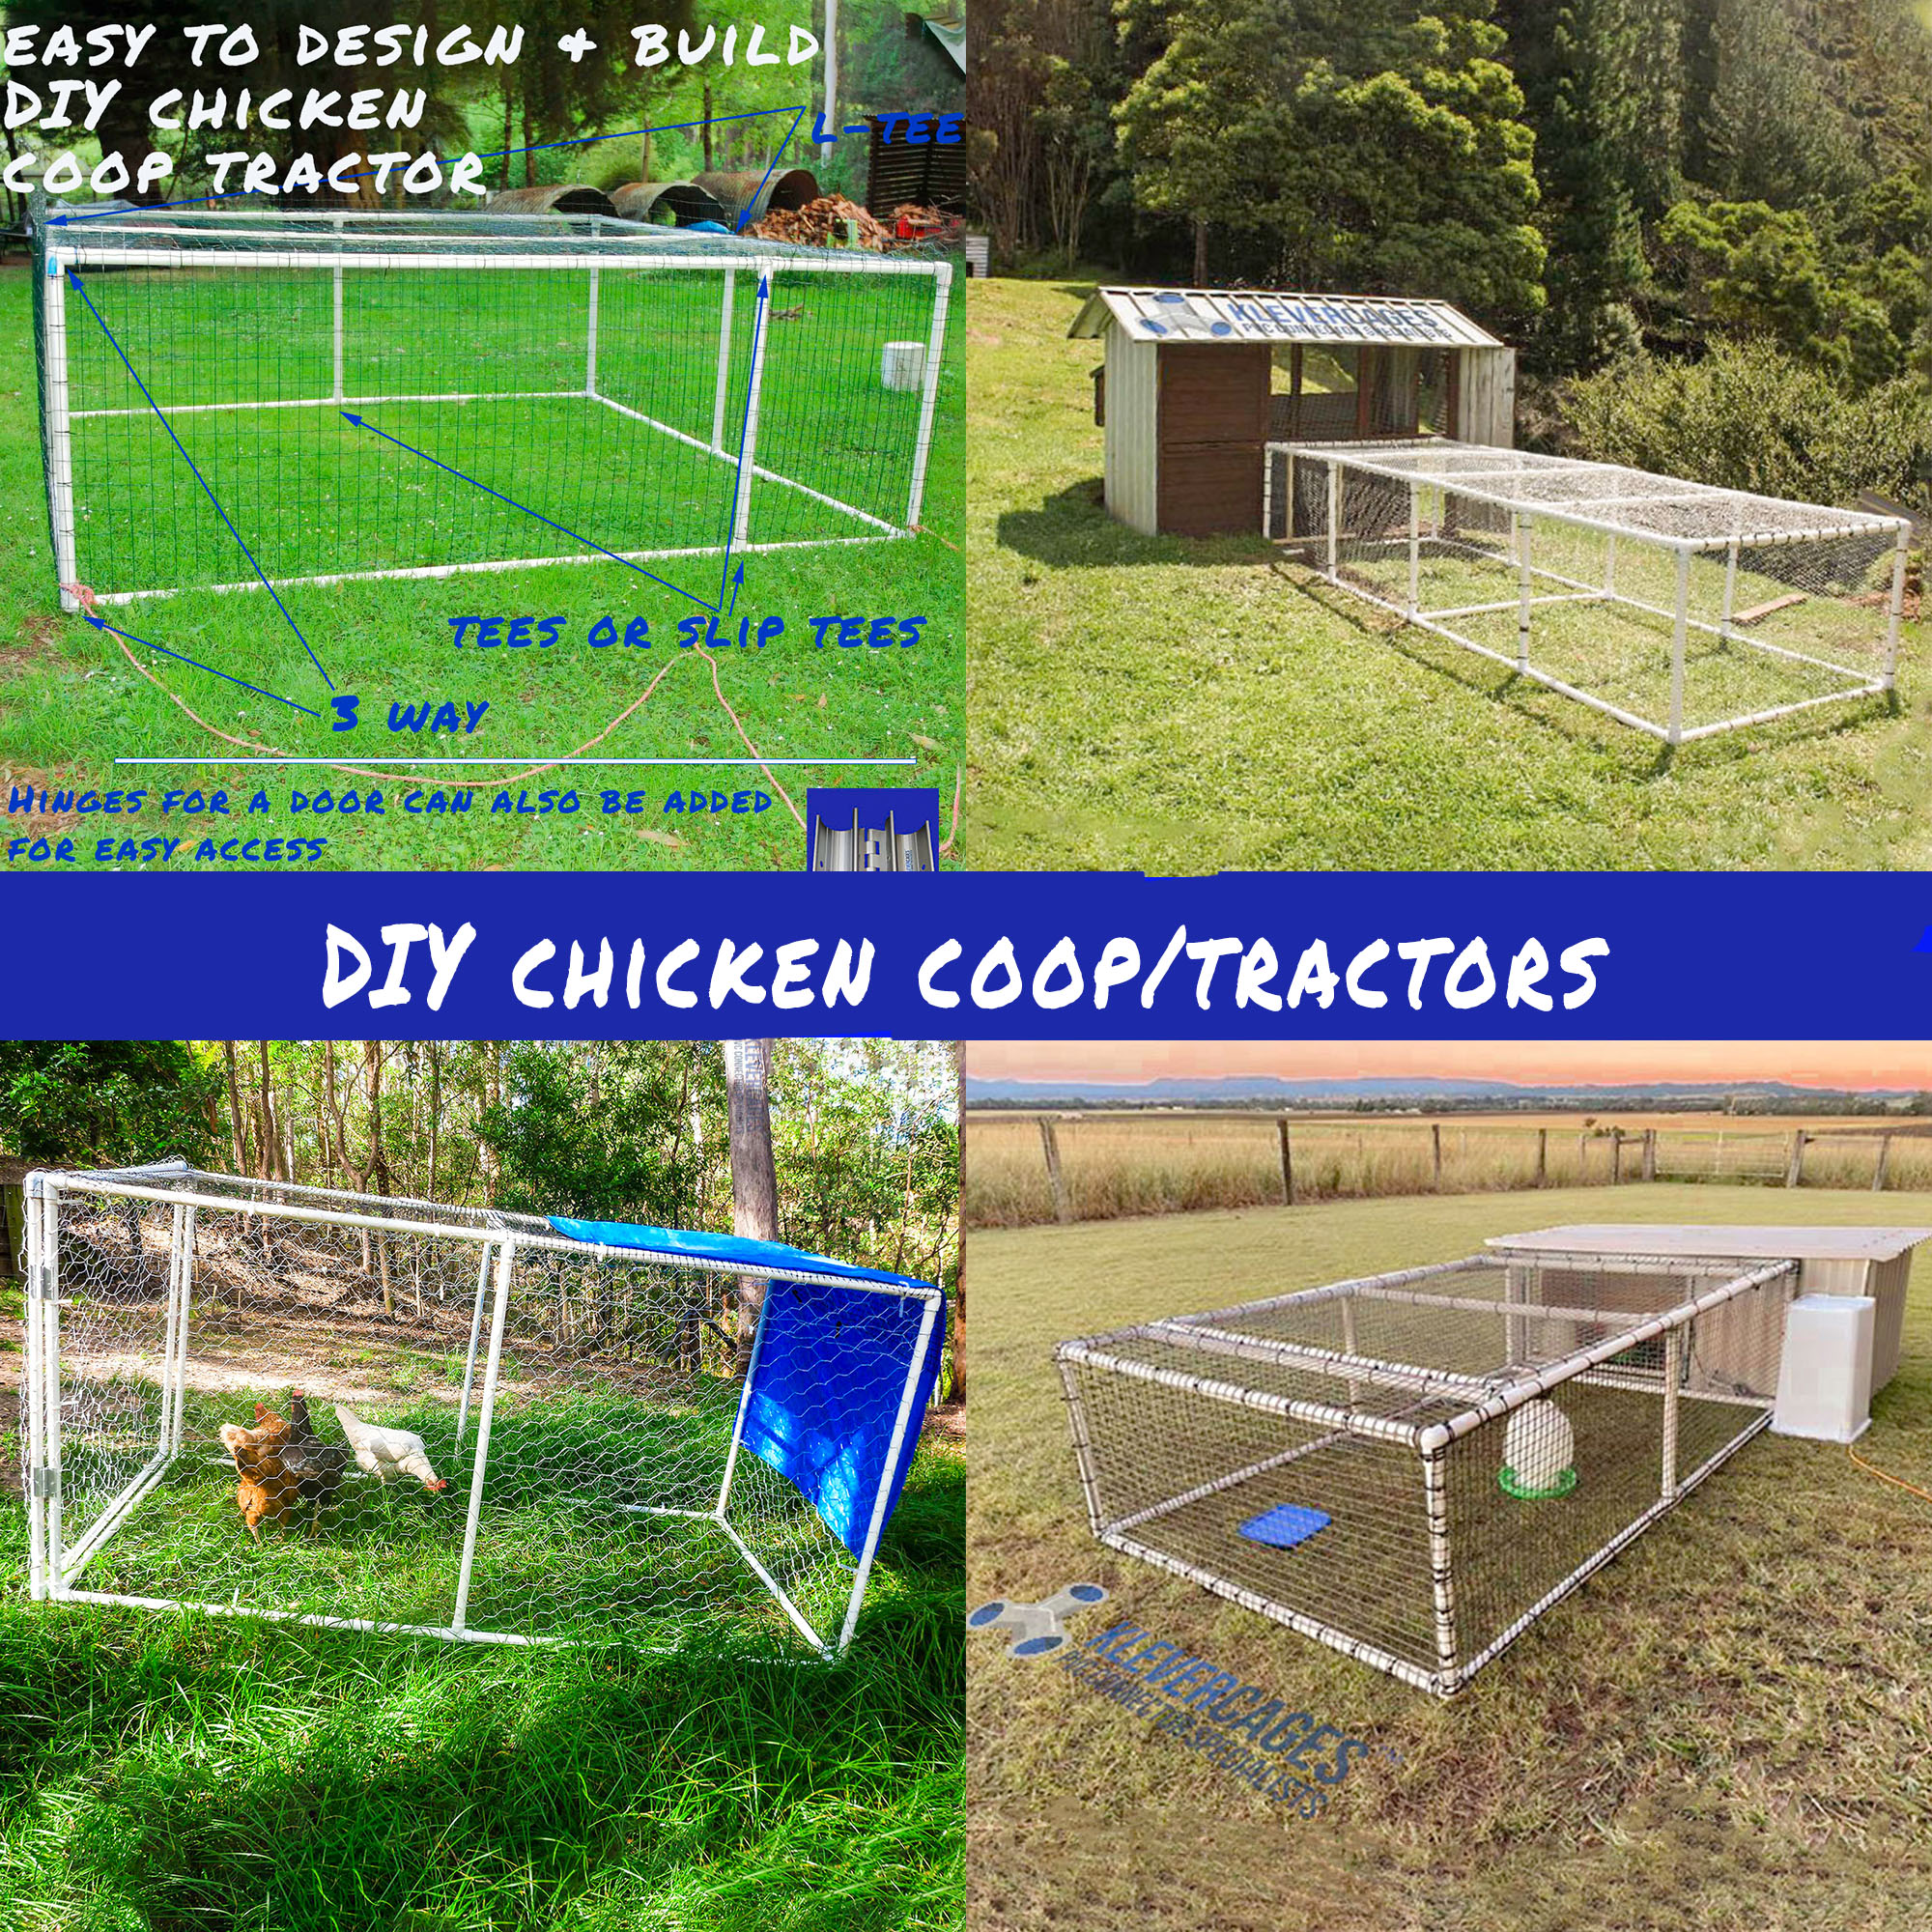 Chicken coops runs and tractors designed and built in PVC pipe and connectors from Klever Cages customers